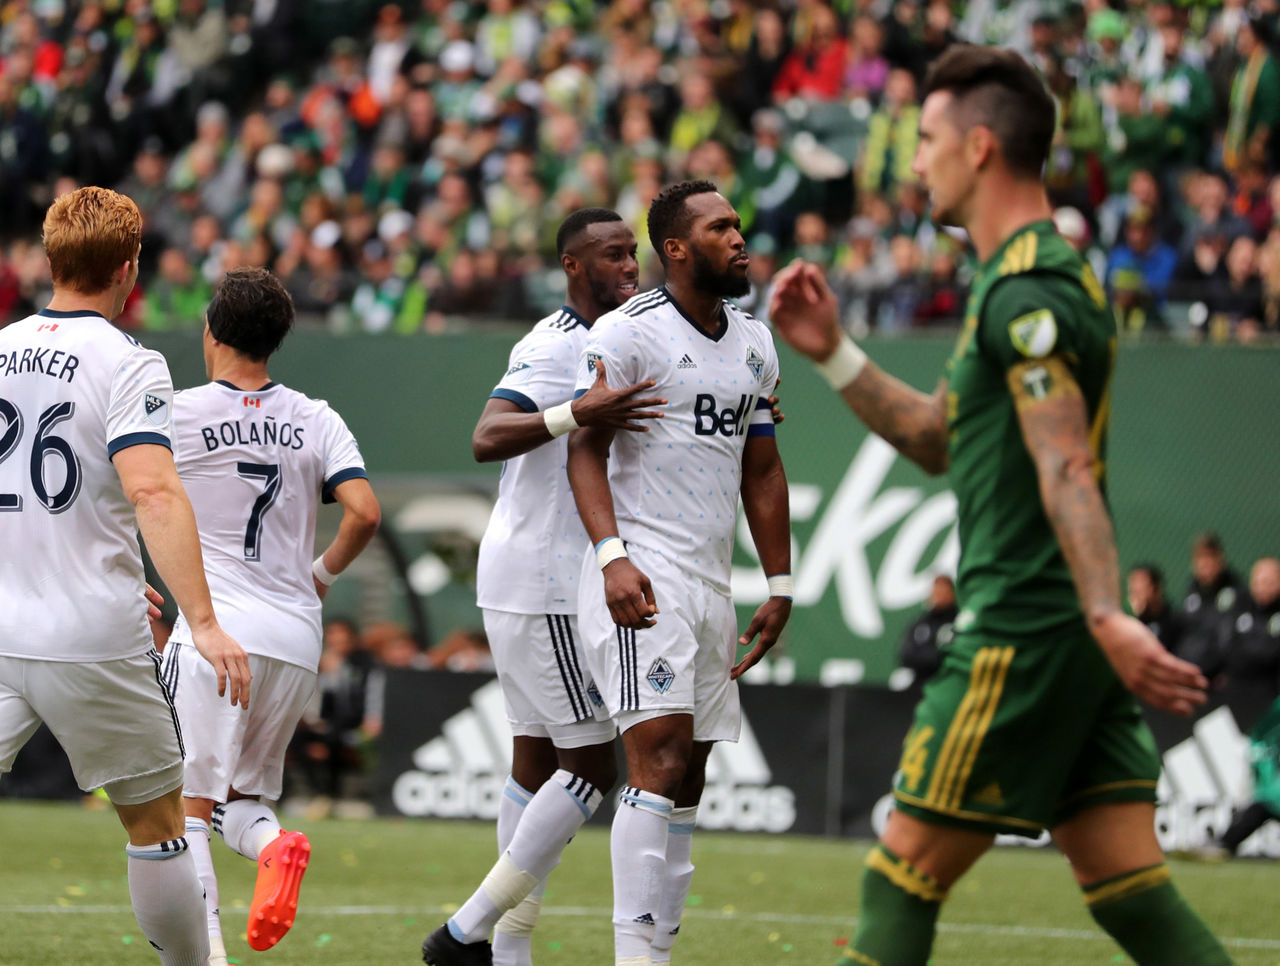 Cropped 2017 10 22t211947z 2123333783 nocid rtrmadp 3 mls vancouver whitecaps fc at portland timbers